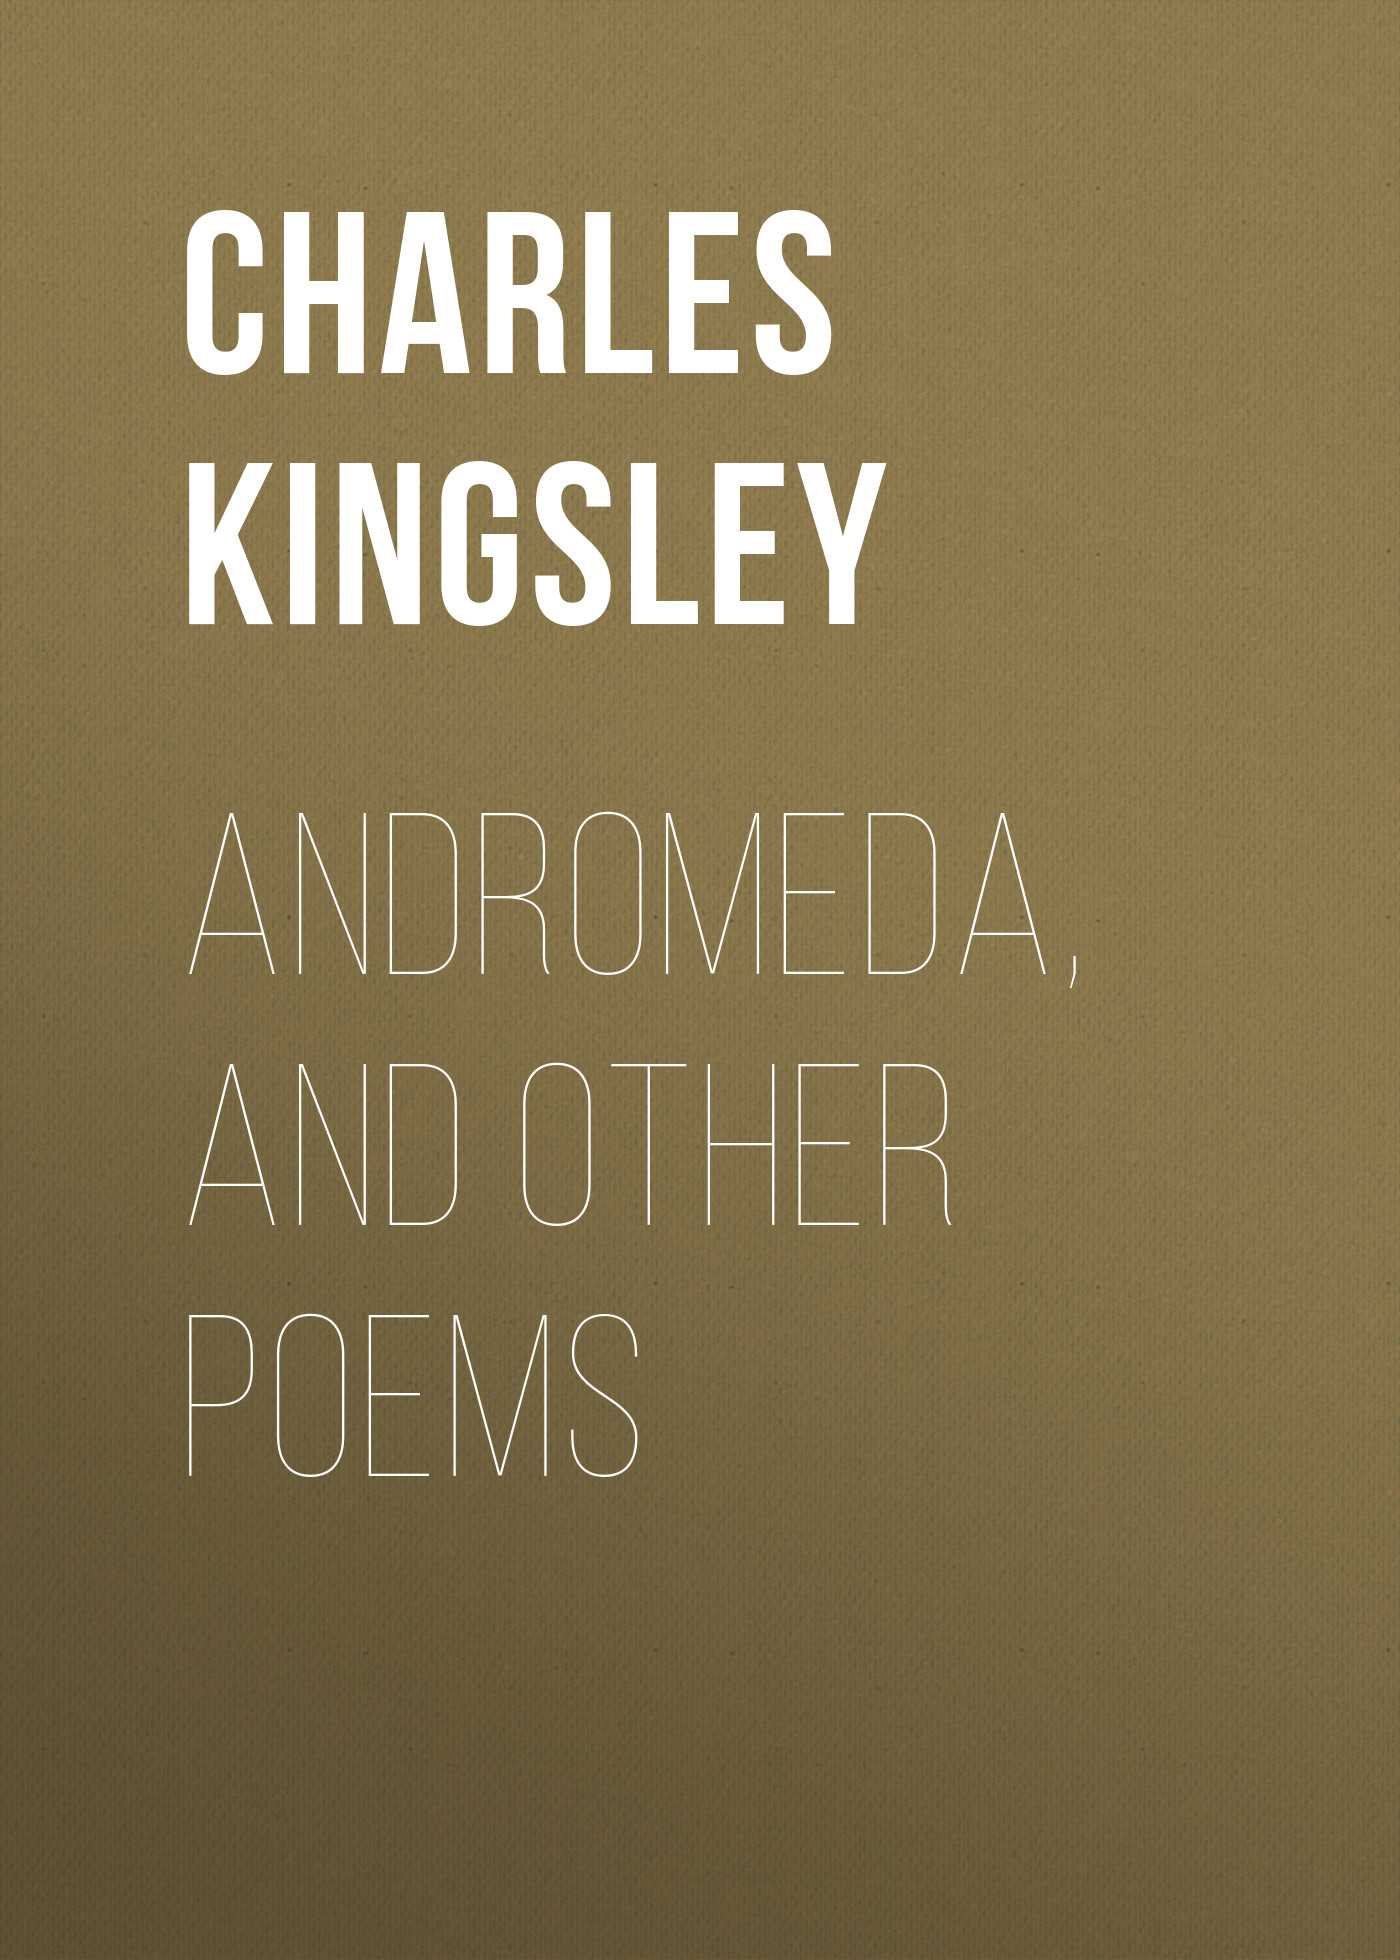 Charles Kingsley Andromeda, and Other Poems